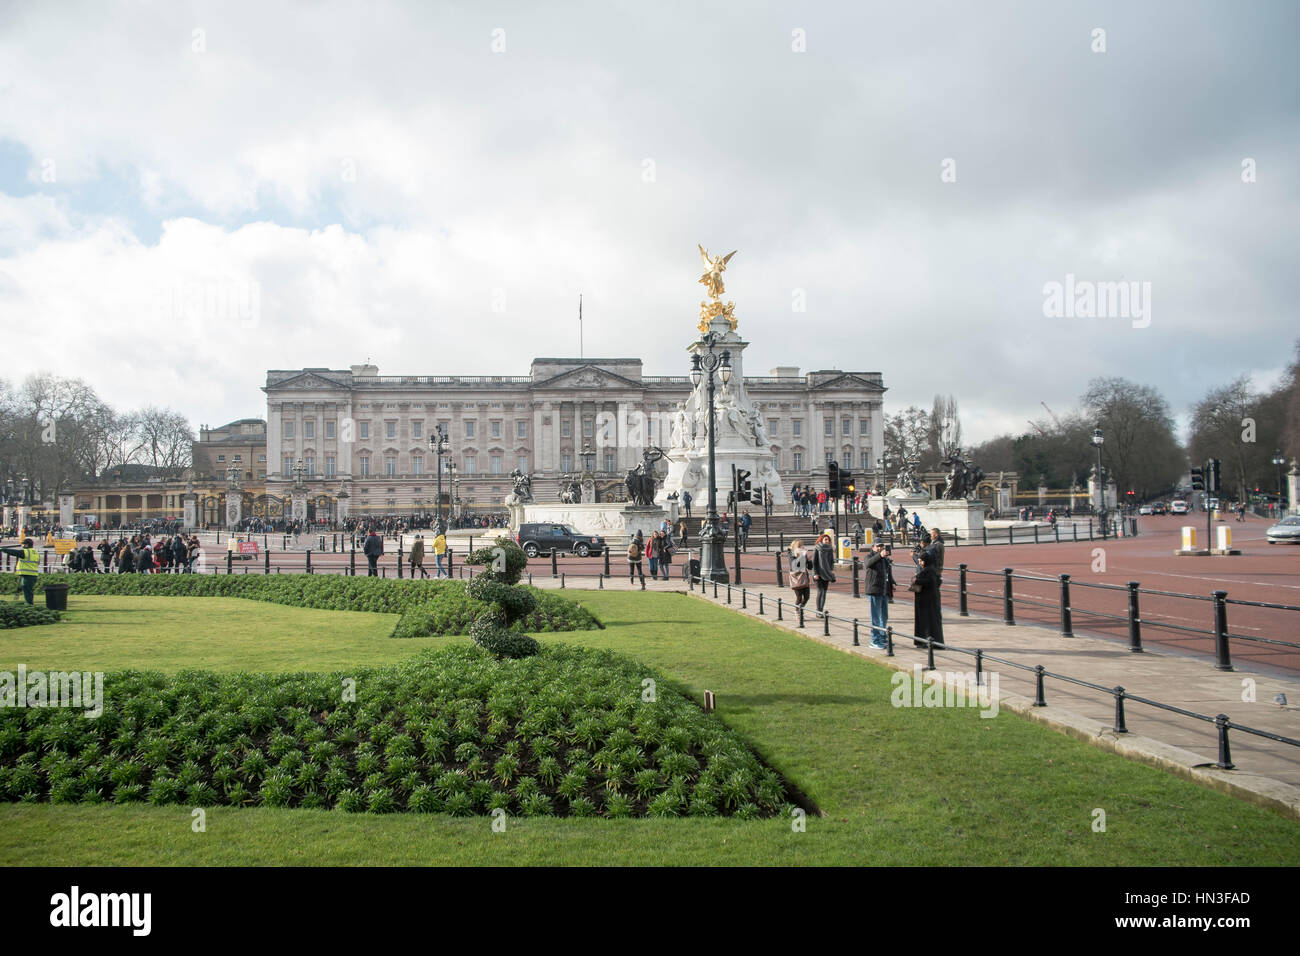 London, UK. 07th Feb, 2017. General view of Buckingham Palace, the London residence and administrative headquarters of the reigning monarch of the United Kingdom. Several gardeners prepare the flowers outside The Palace, ready fhe bloom in spring. Credit: Alberto Pezzali/Pacific Press/Alamy Live News Stock Photo